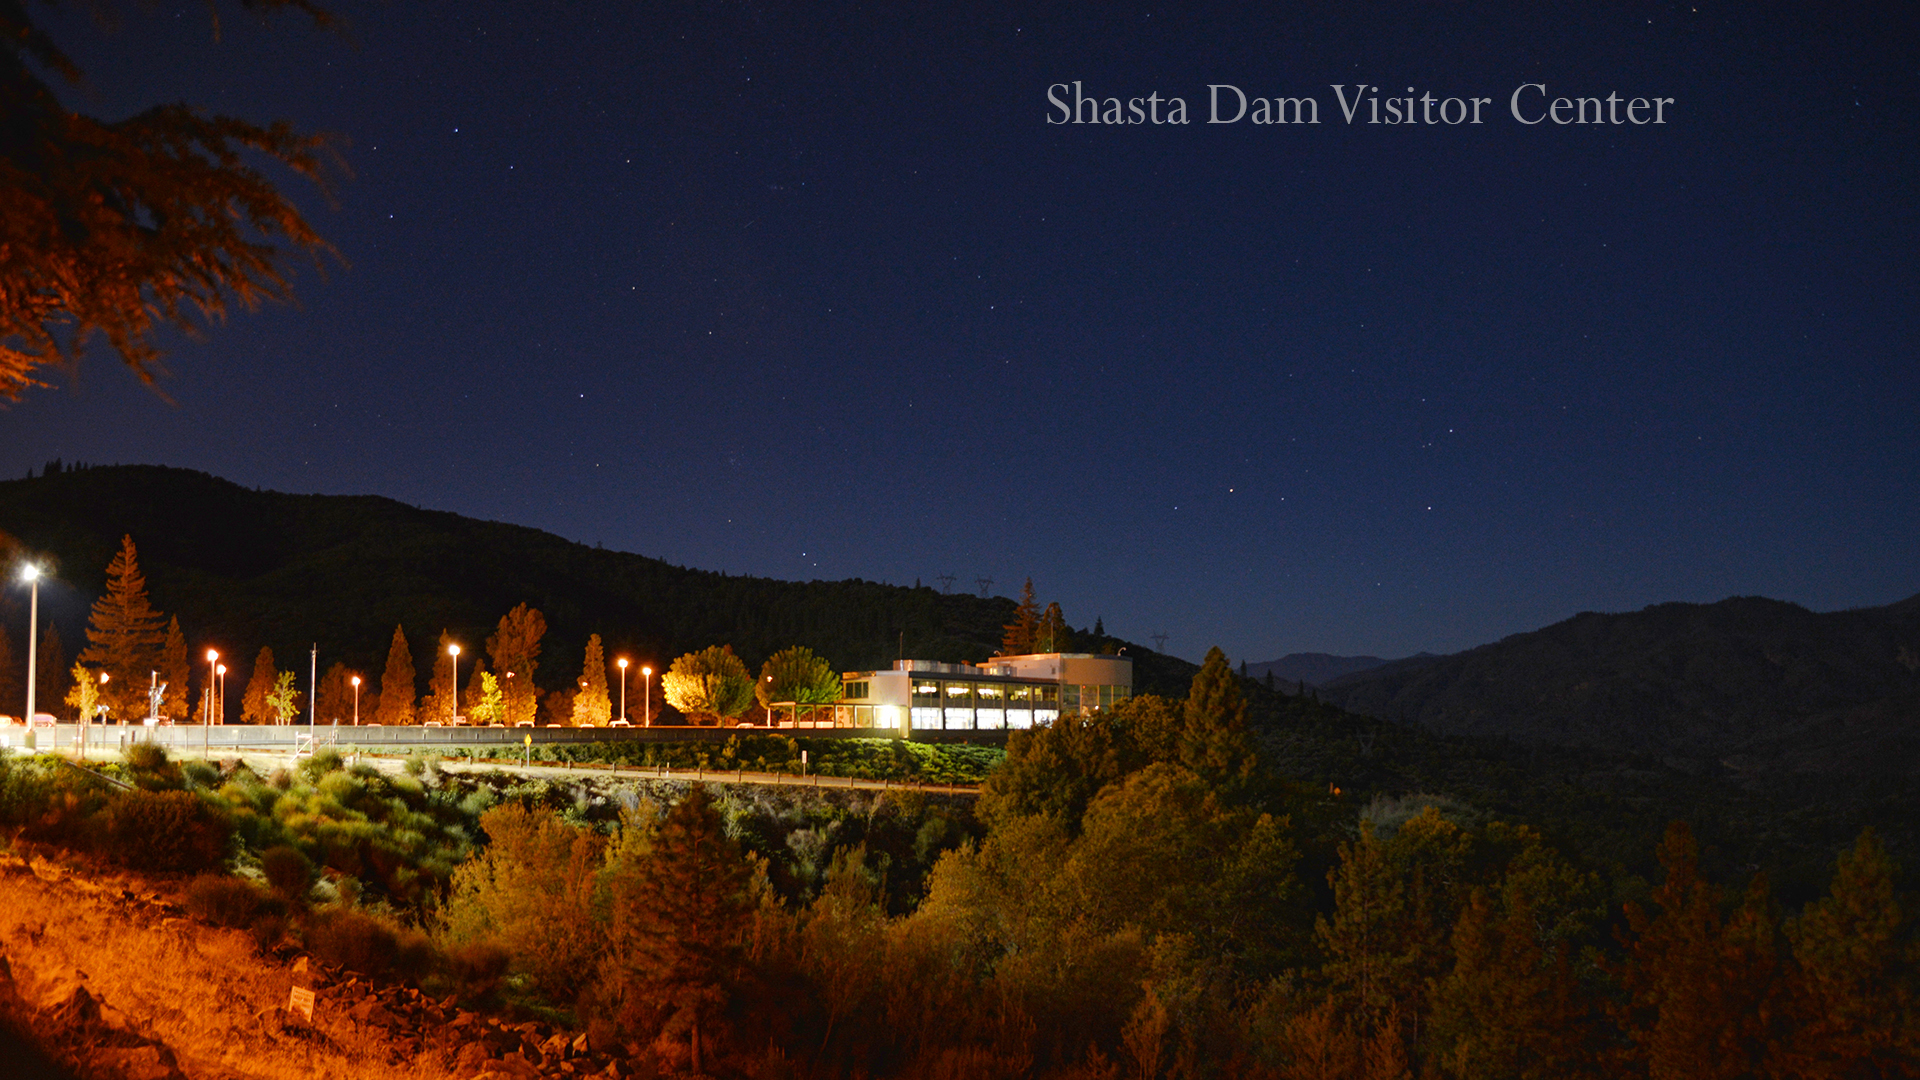 Shasta Dam Visitor Center